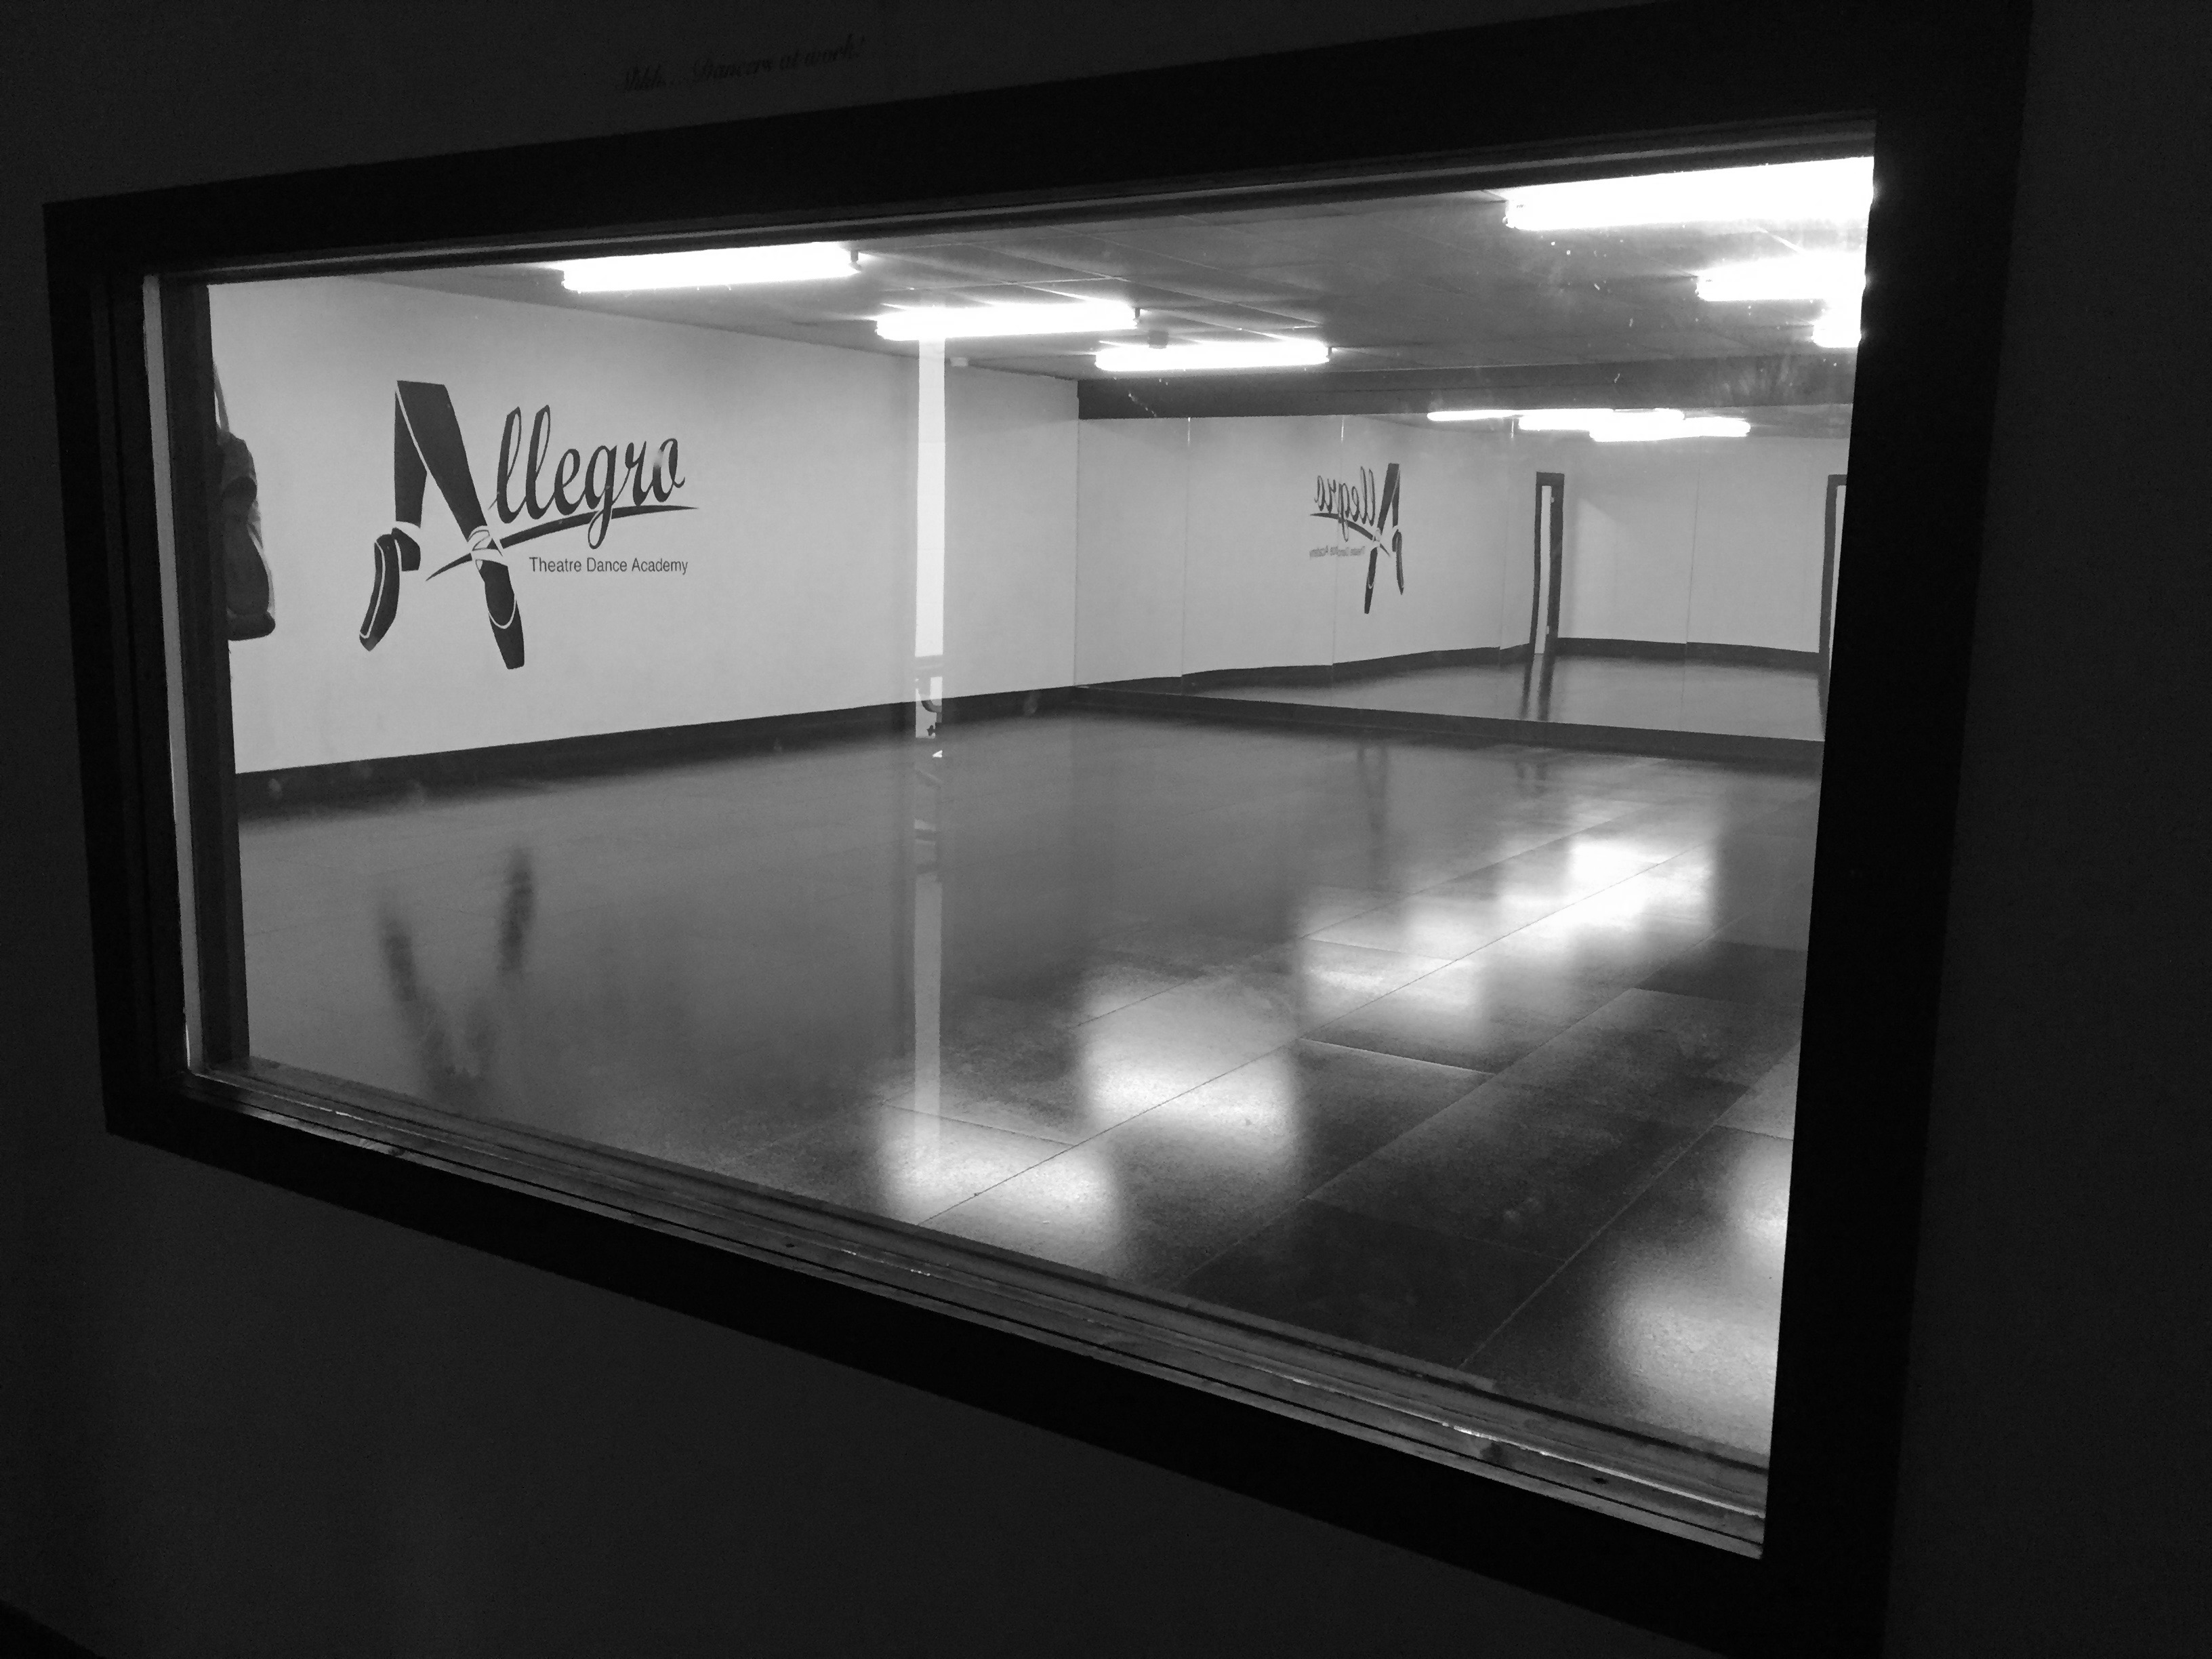 Viewing-room1-studio-Allegro-Theatre-Dance-Academy.jpg